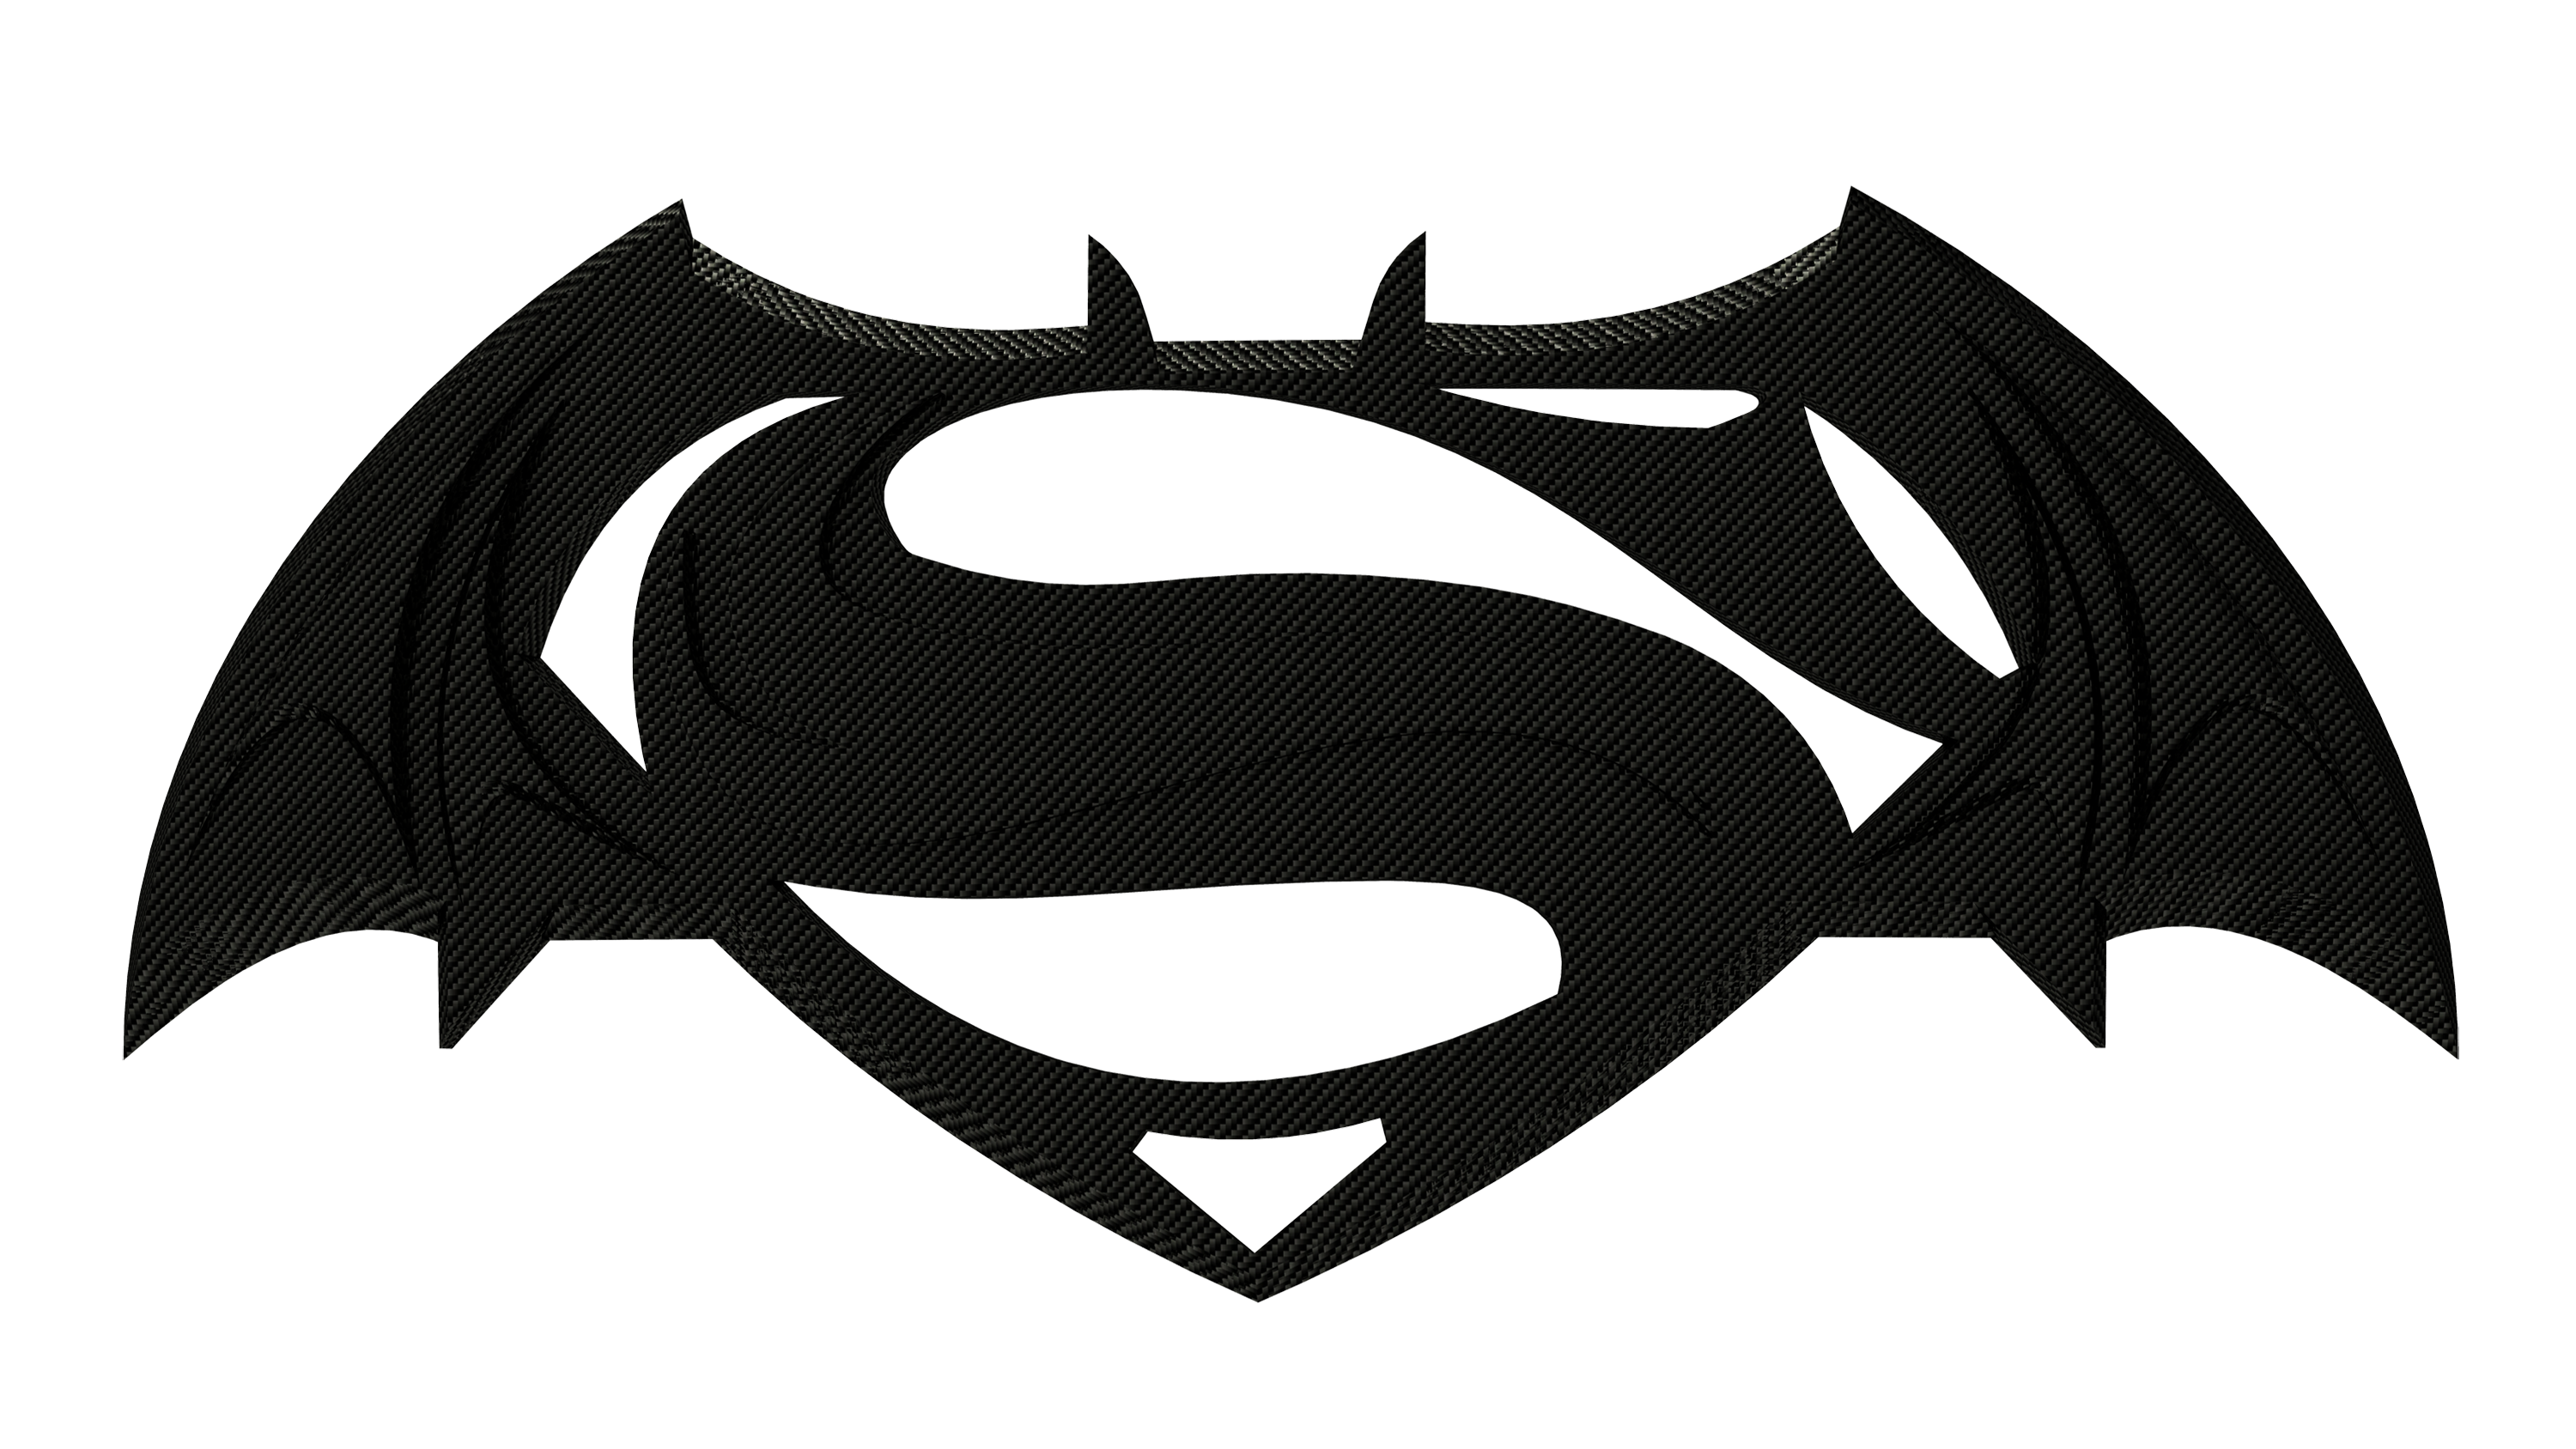 Superman logo black and white png. Photo arts